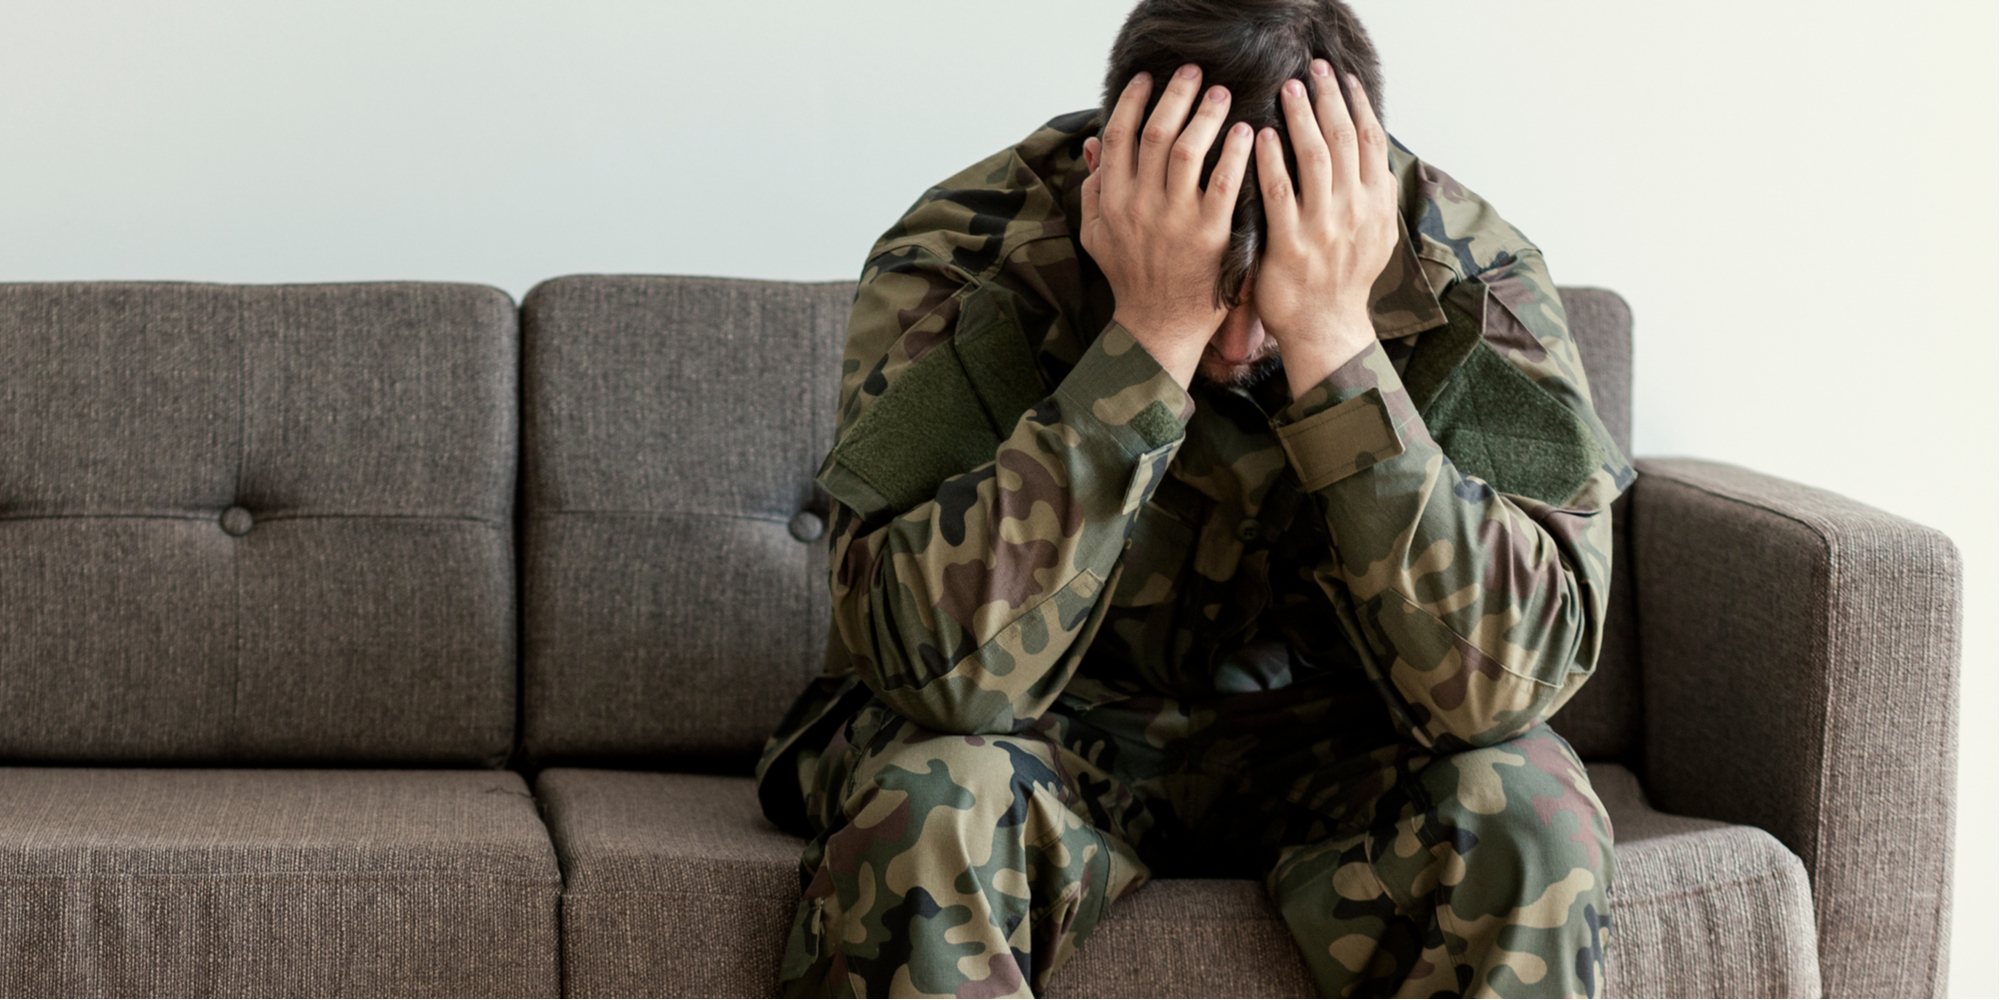 signs of PTSD